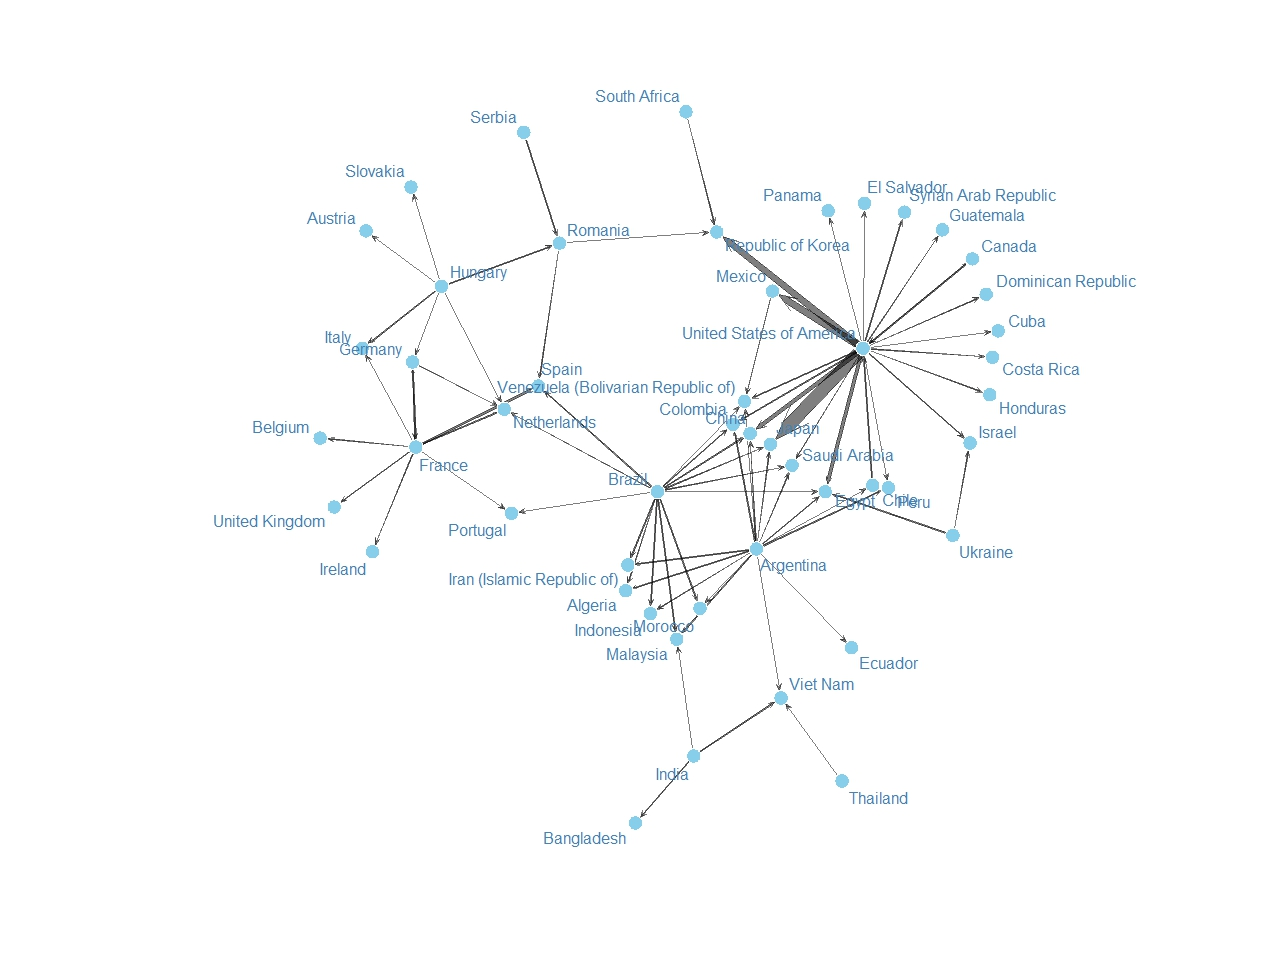 Stateastics Maize Trade Part I Generate The Network Diagram